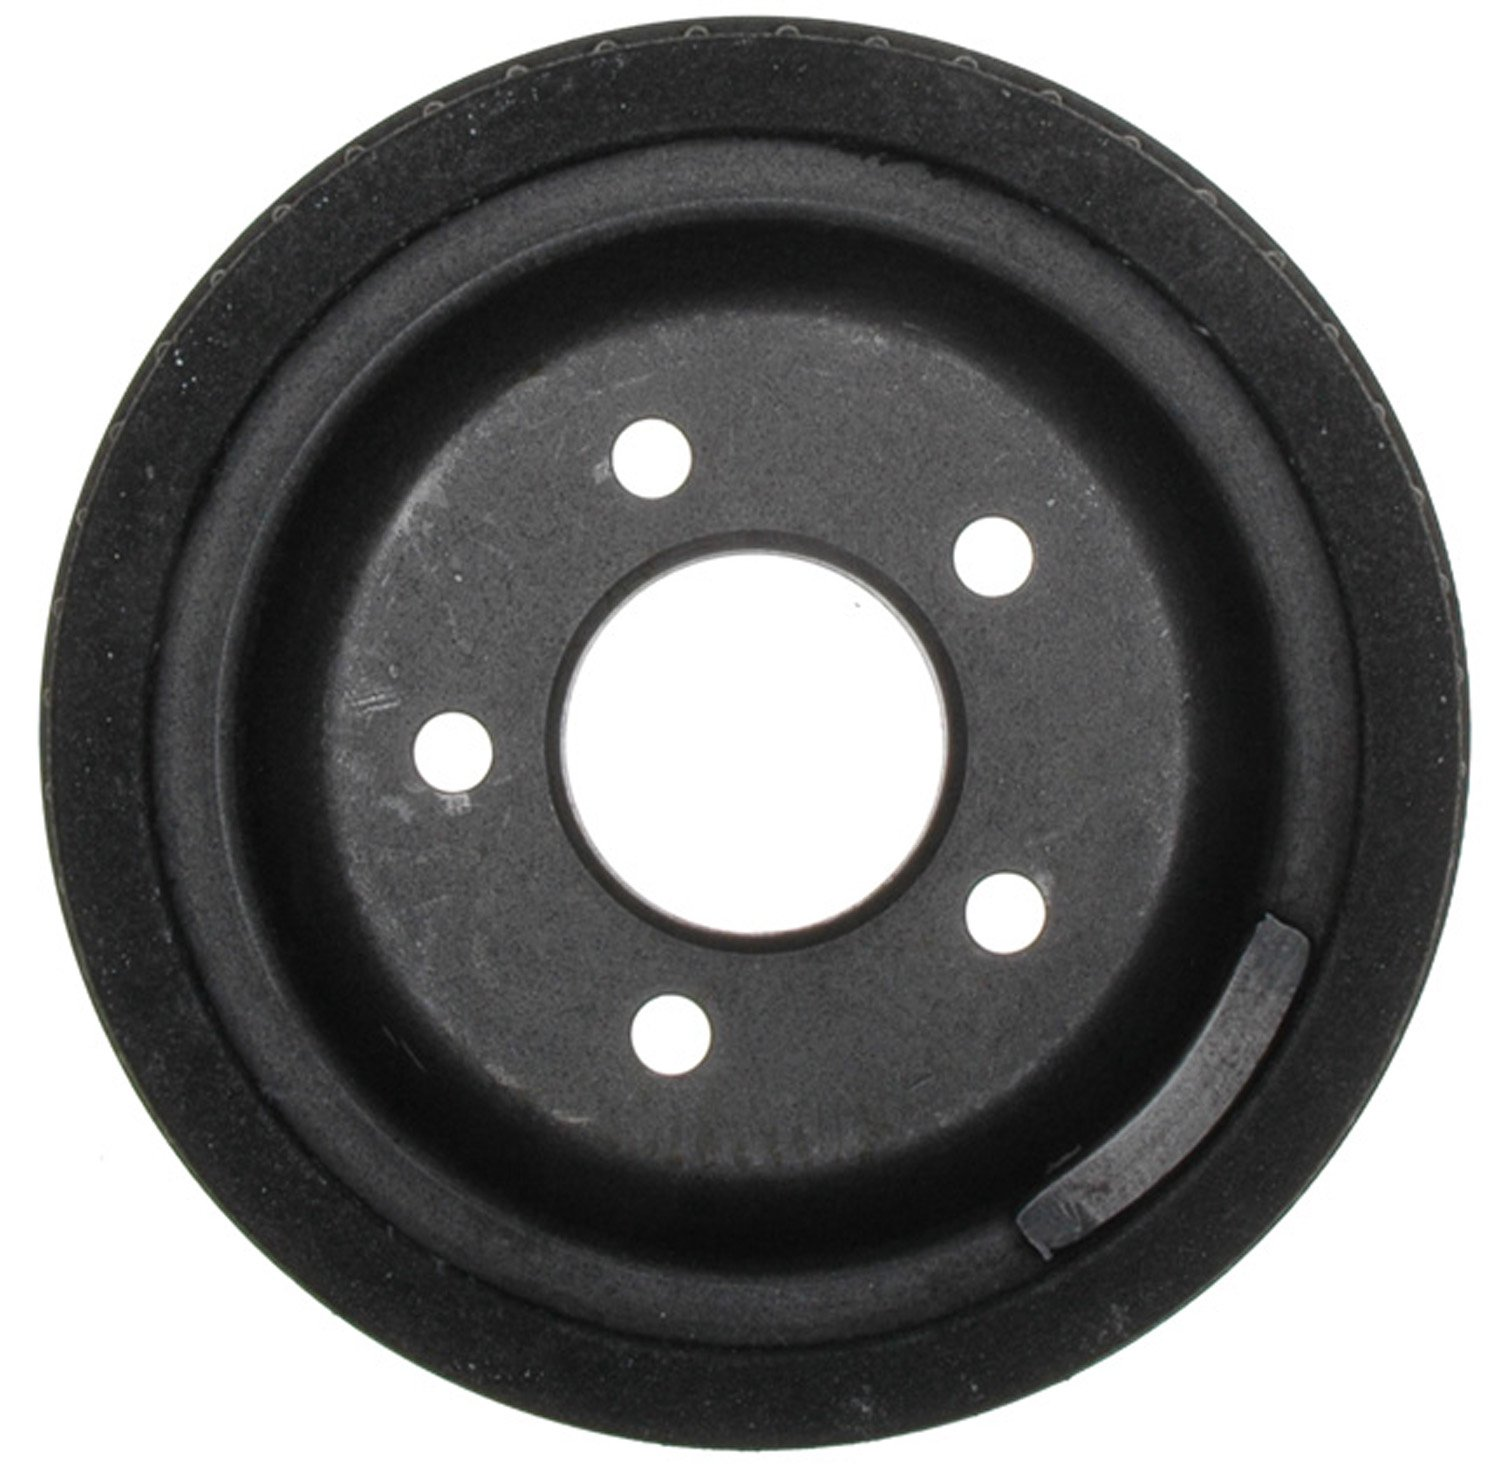 ACDelco 18B7 Professional Rear Brake Drum Assembly